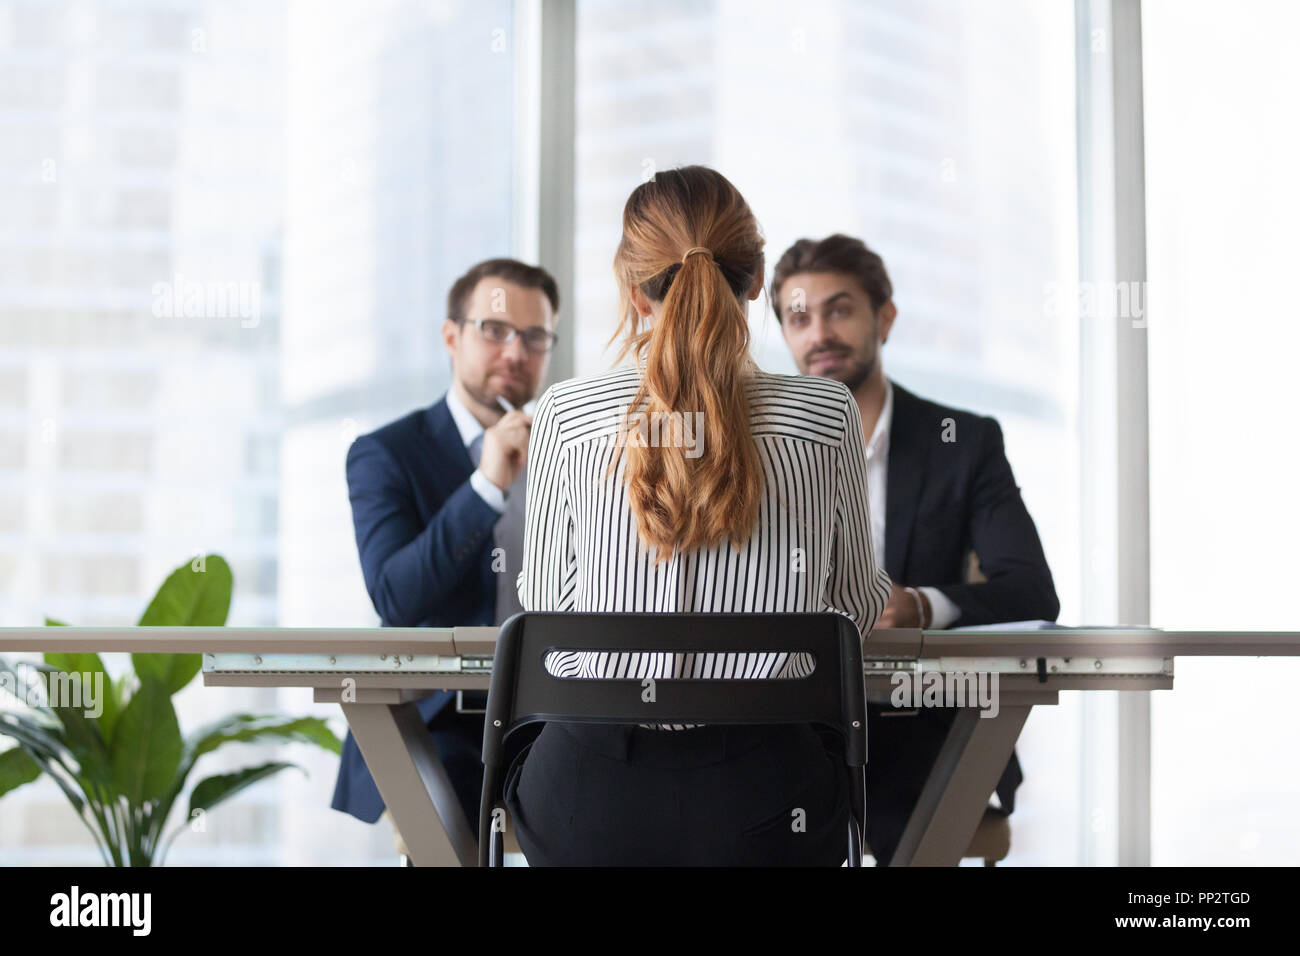 Female job candidate interview with doubting employers - Stock Image